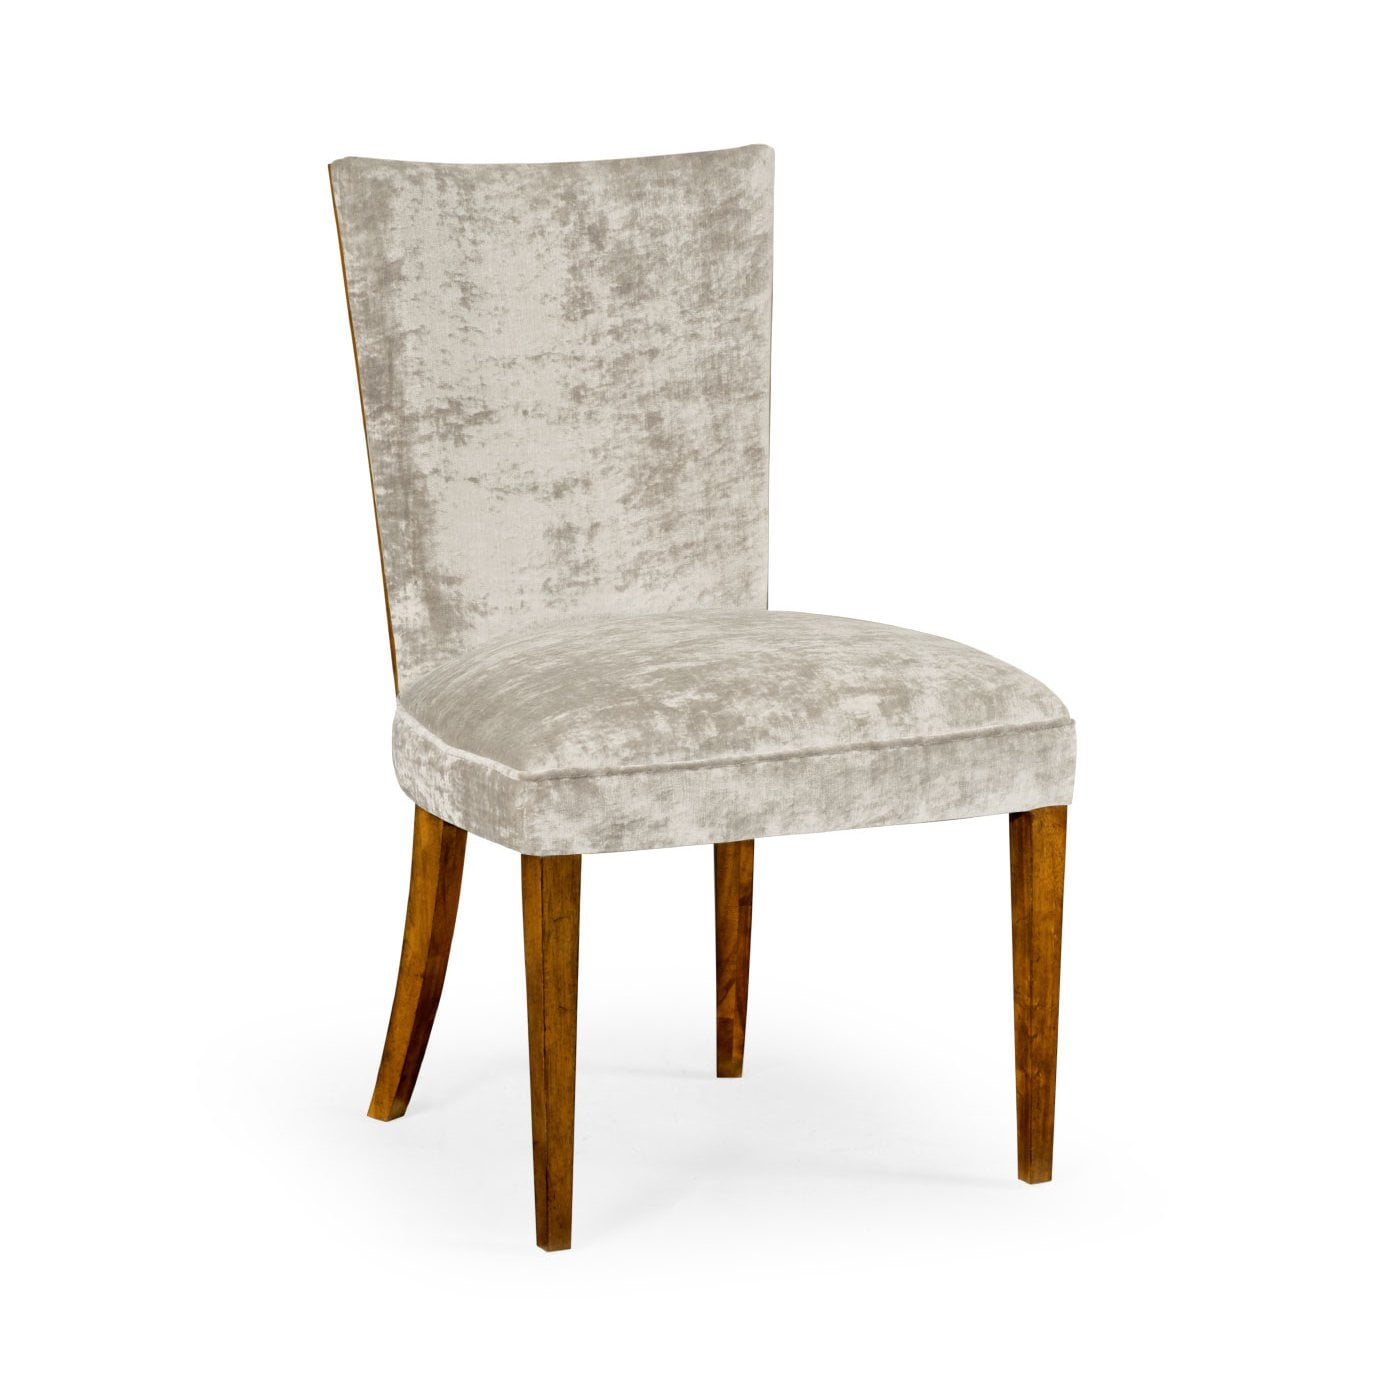 Luxury Upholstered Dining Chair Calico Swanky Interiors